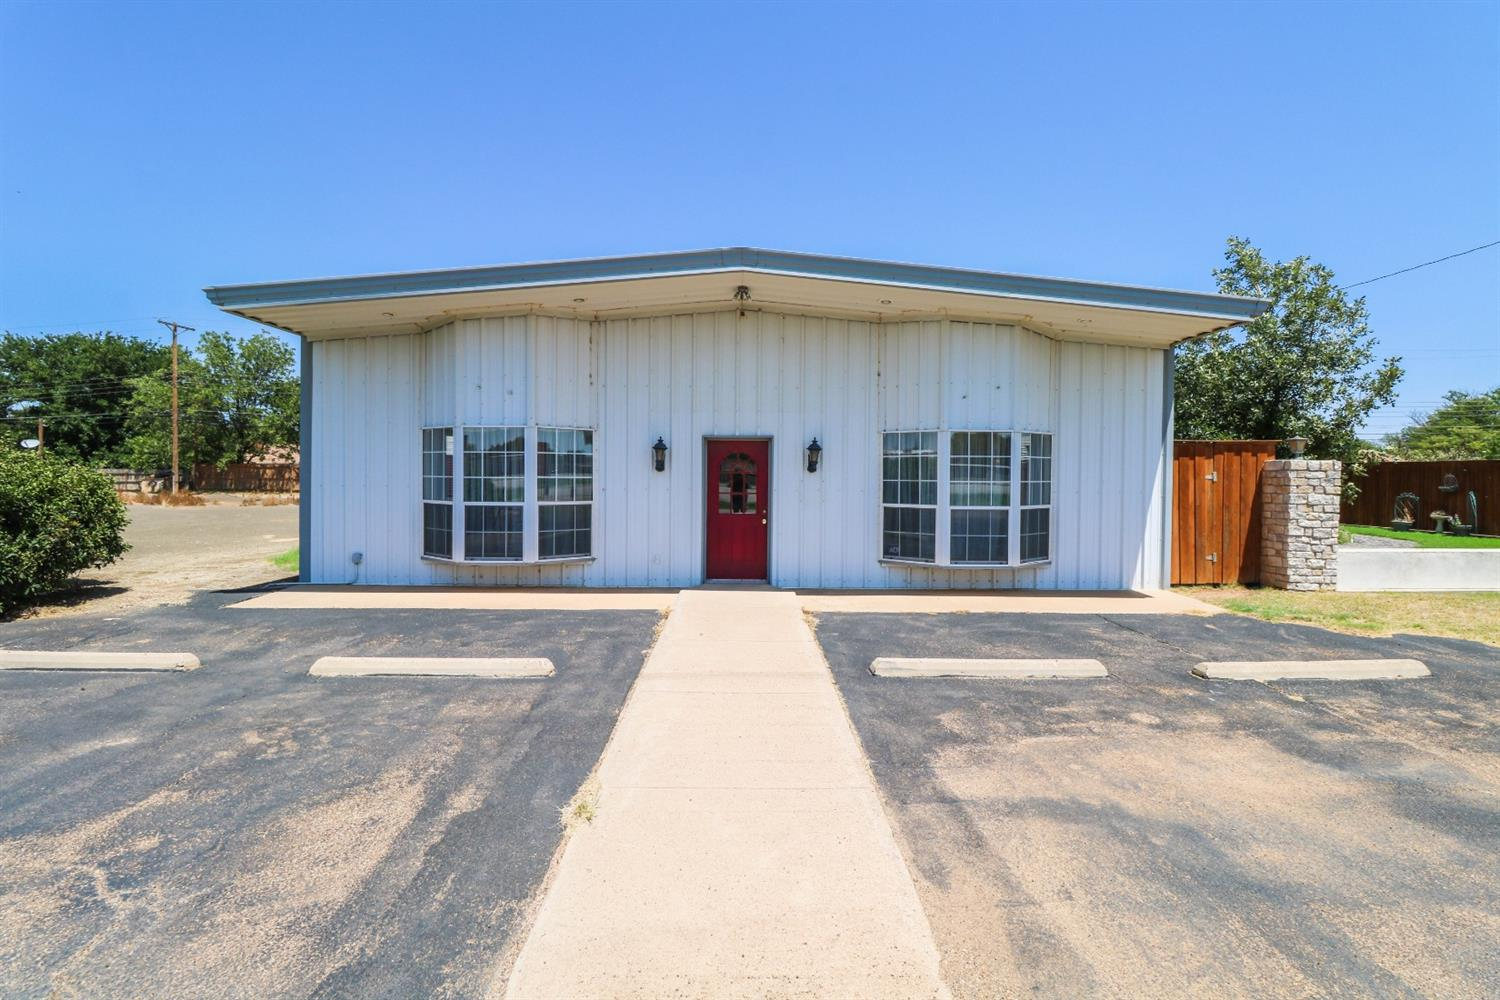 Great sized office building conveniently located right off of HWY 84.  This building offers a reception area, 6 office spaces, a kitchen/breakroom as well as a large meeting or conference room.  Building has been very well maintained and owner is motivated to sell.  Call today to schedule your private showing.  Carrie Hanlin 806-891-5119.